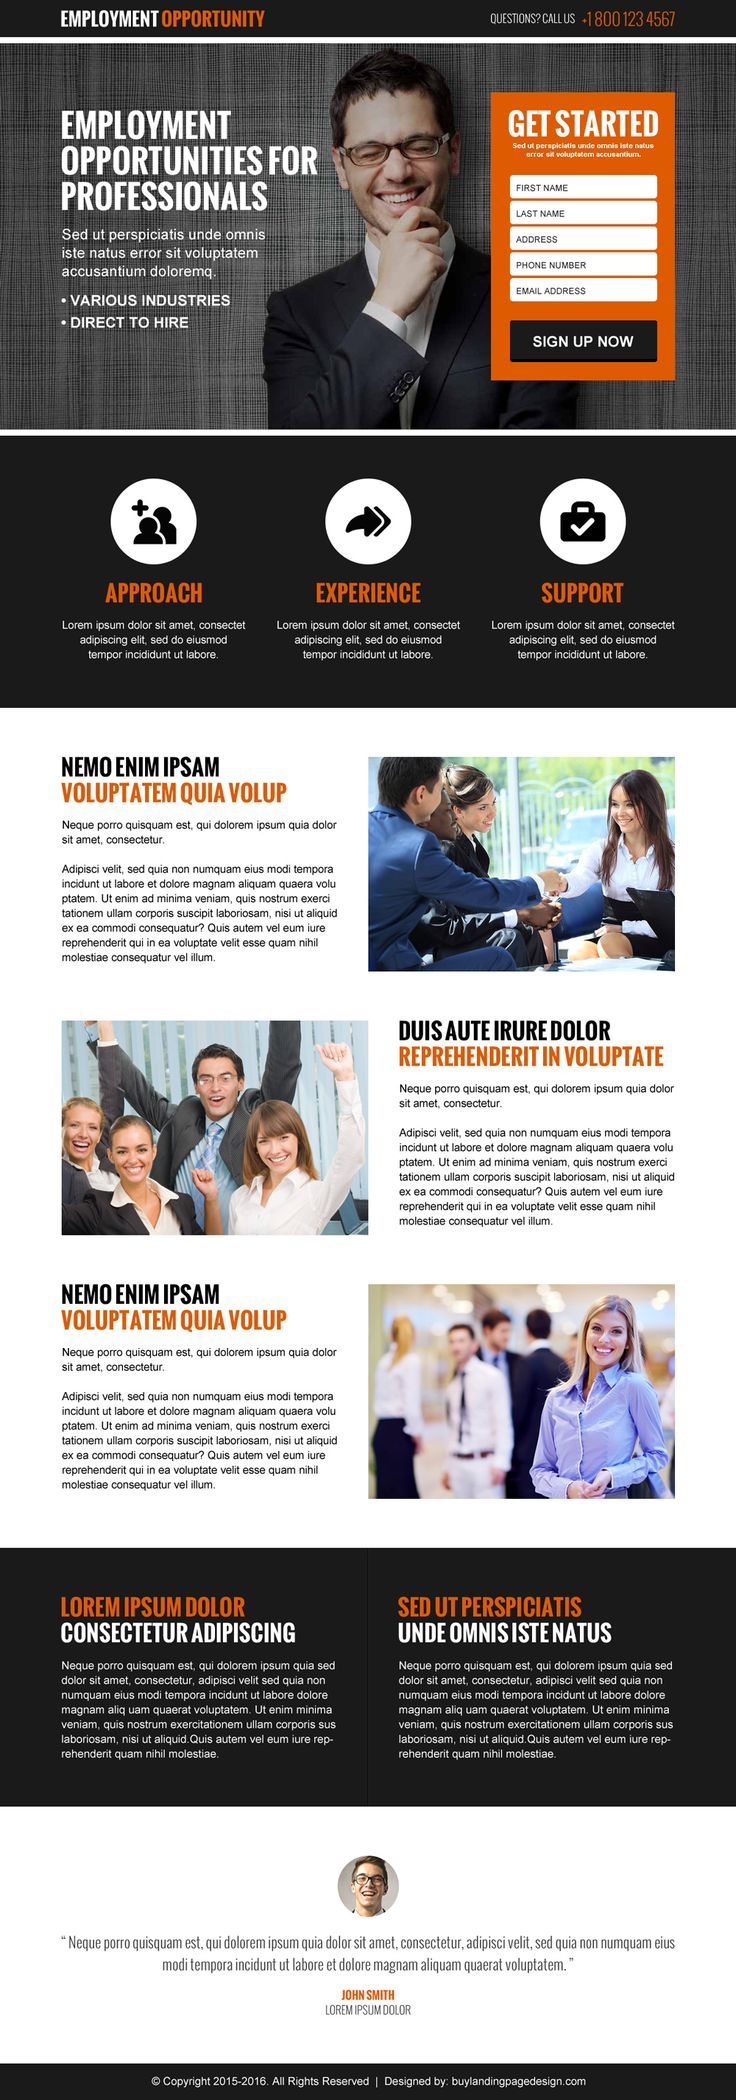 employment opportunity lead gen responsive landing page design template